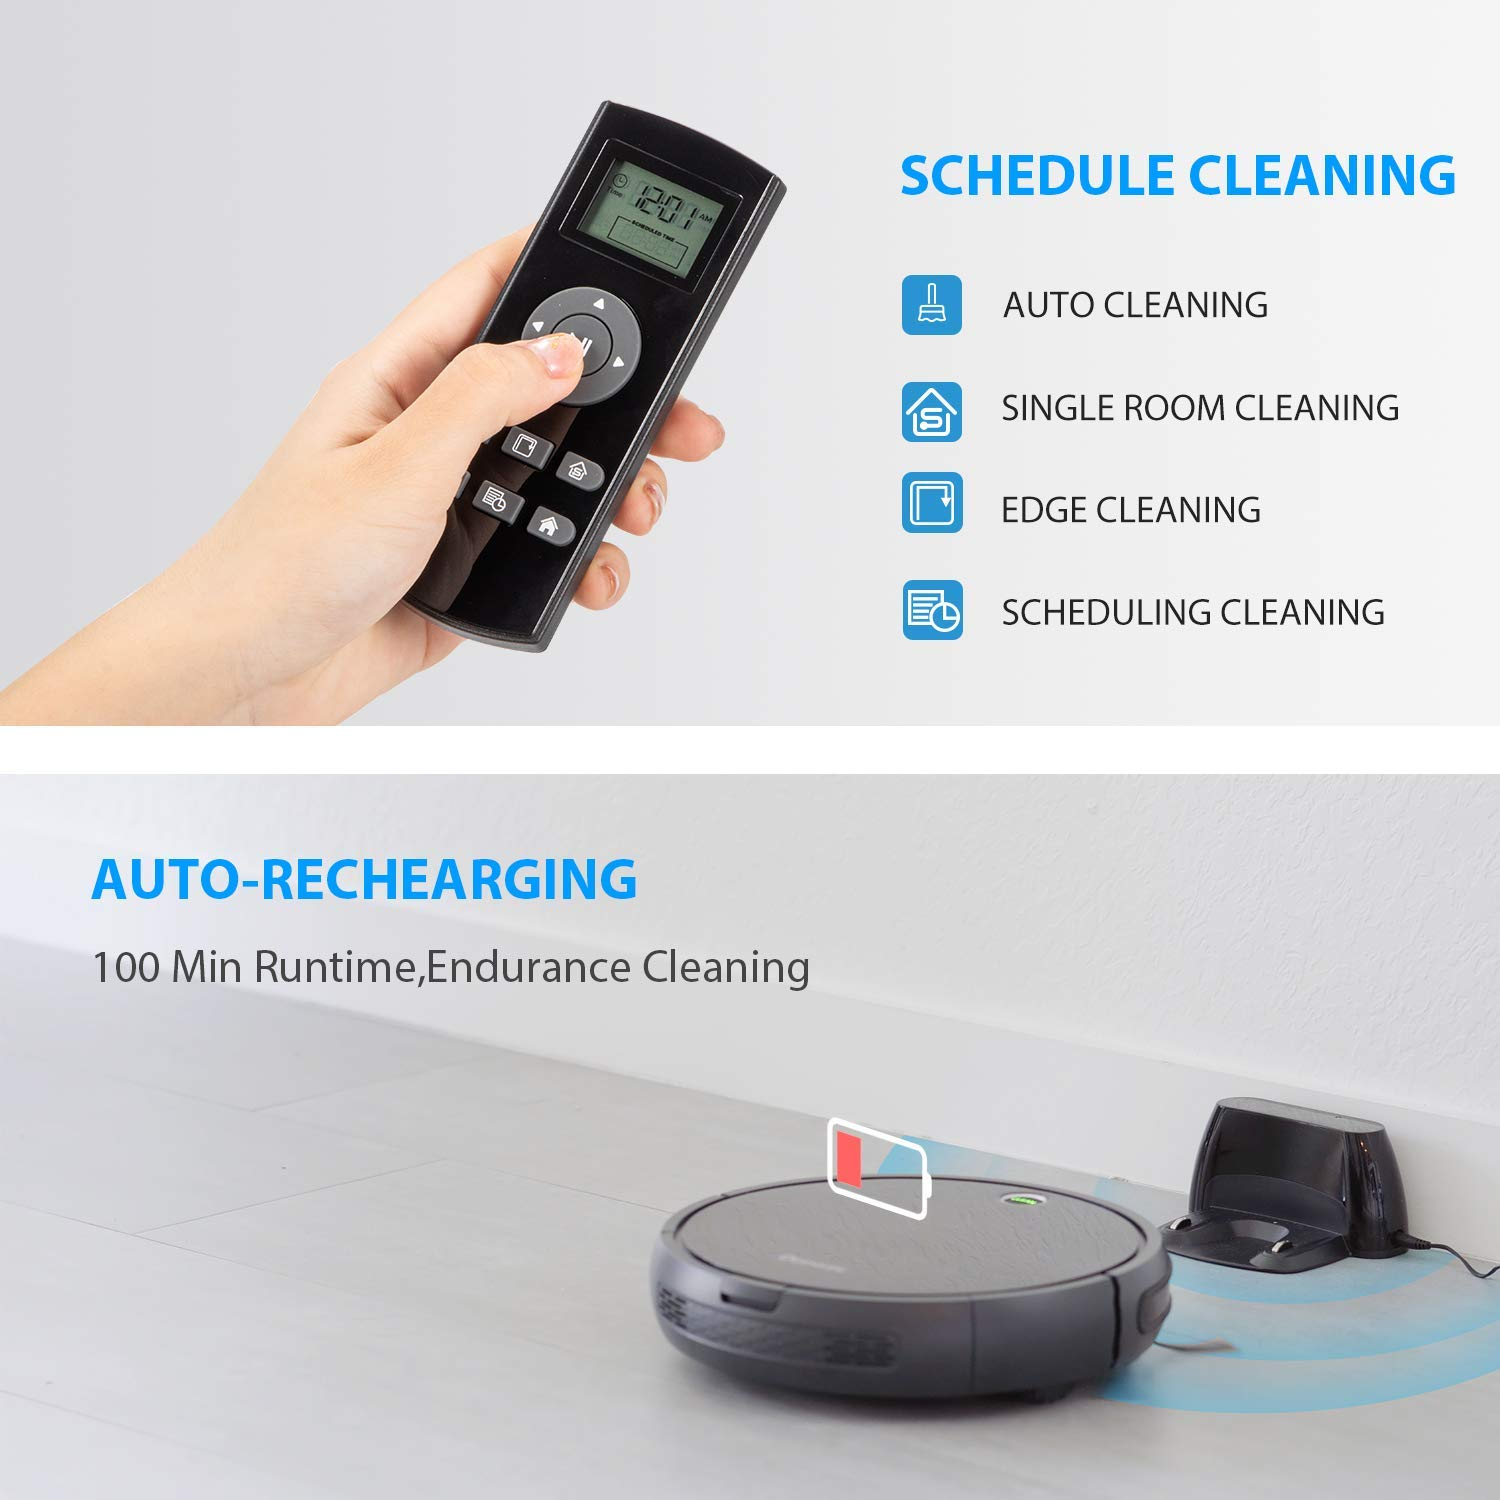 Deenkee-Robotic-Vacuum-Cleaner-and-Mop